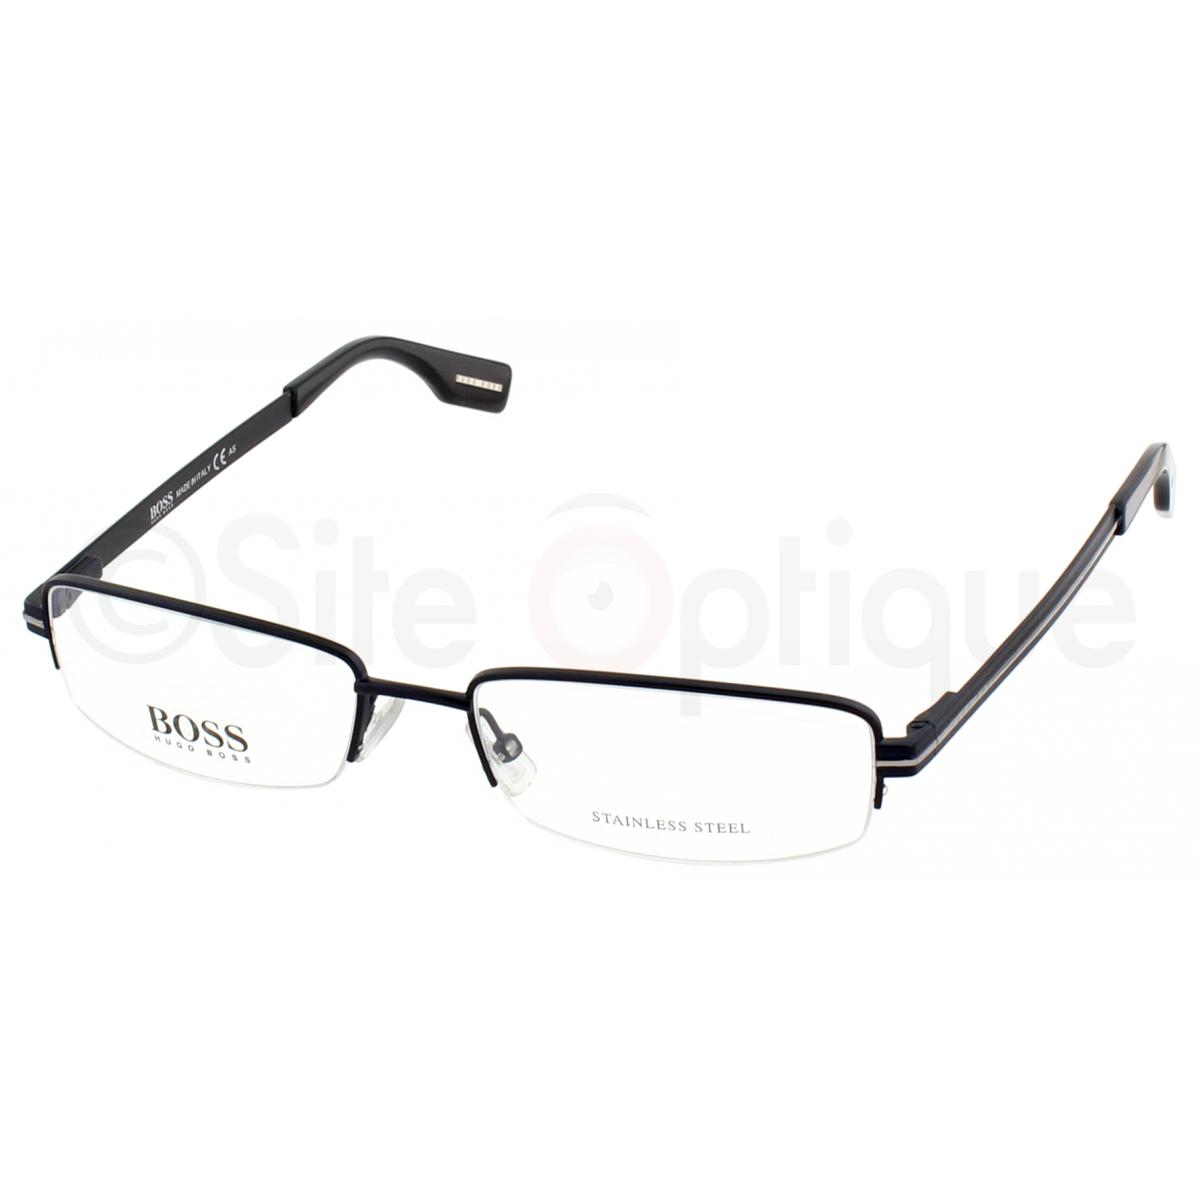 HUGO BOSS - BOSS 0376 – Site optique 65c629c0887f